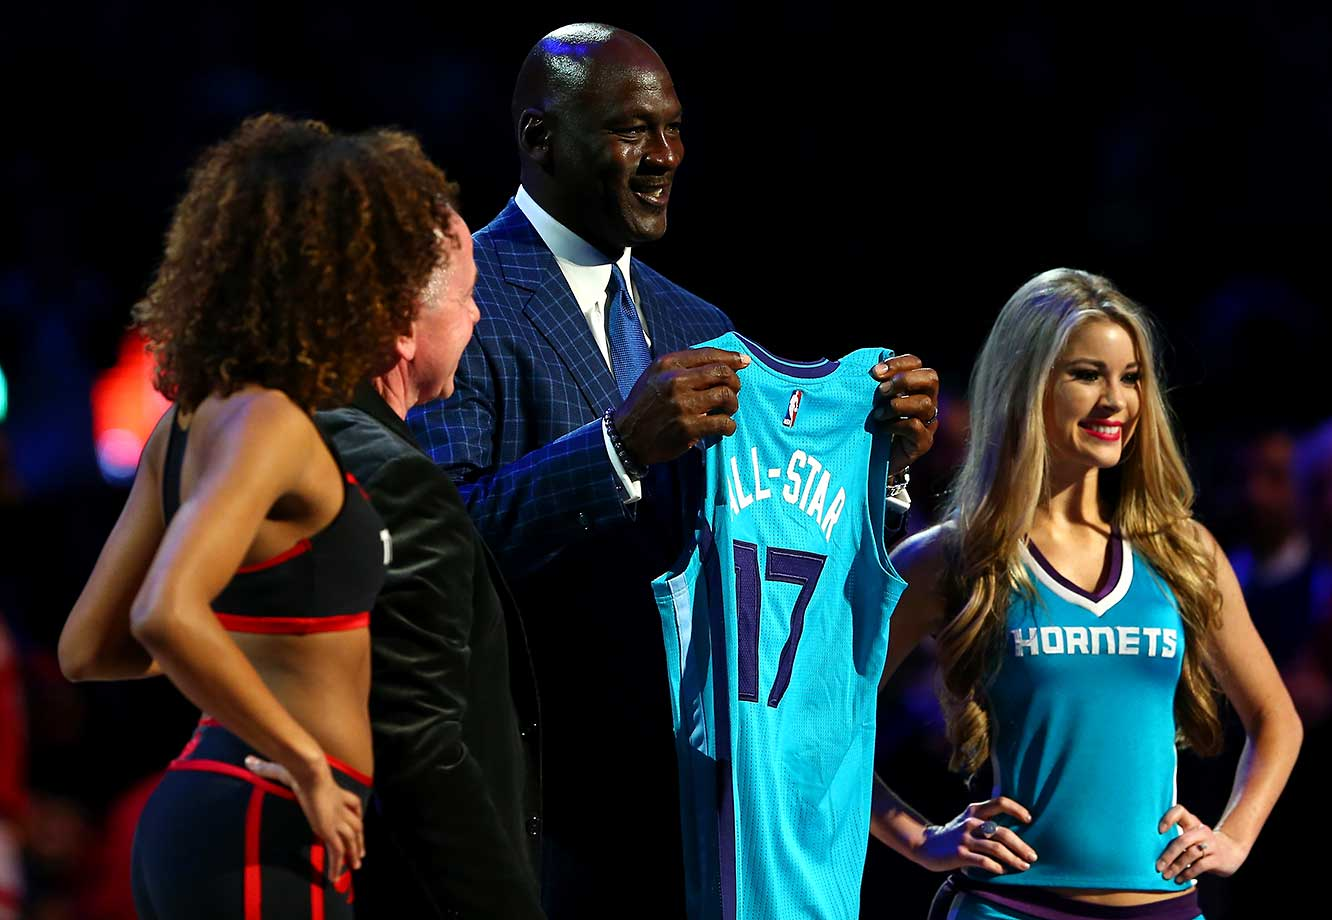 NBA Hall of Famer and Charlotte Hornets owner Michael Jordan holds a jersey signifying Charlotte as the host city for the 2017 All-Star game.